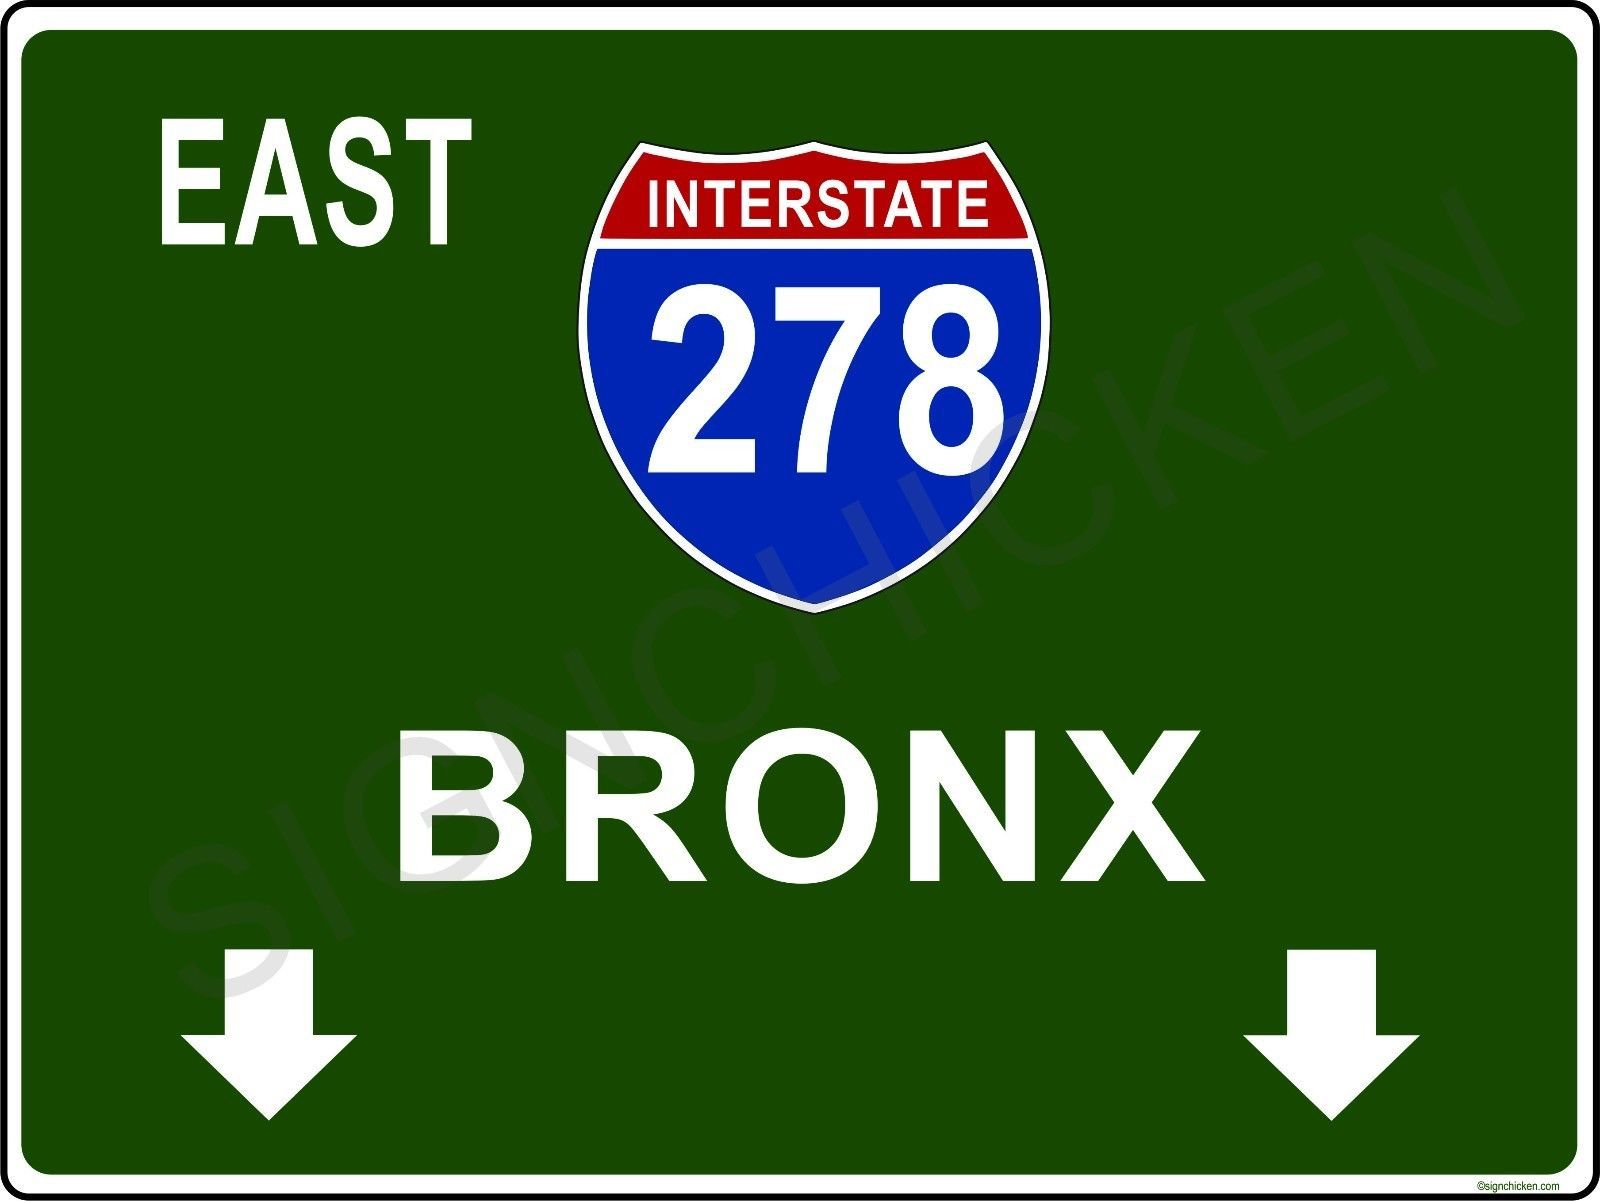 Details About Mini Interstate Road Sign New York I278 Bronx